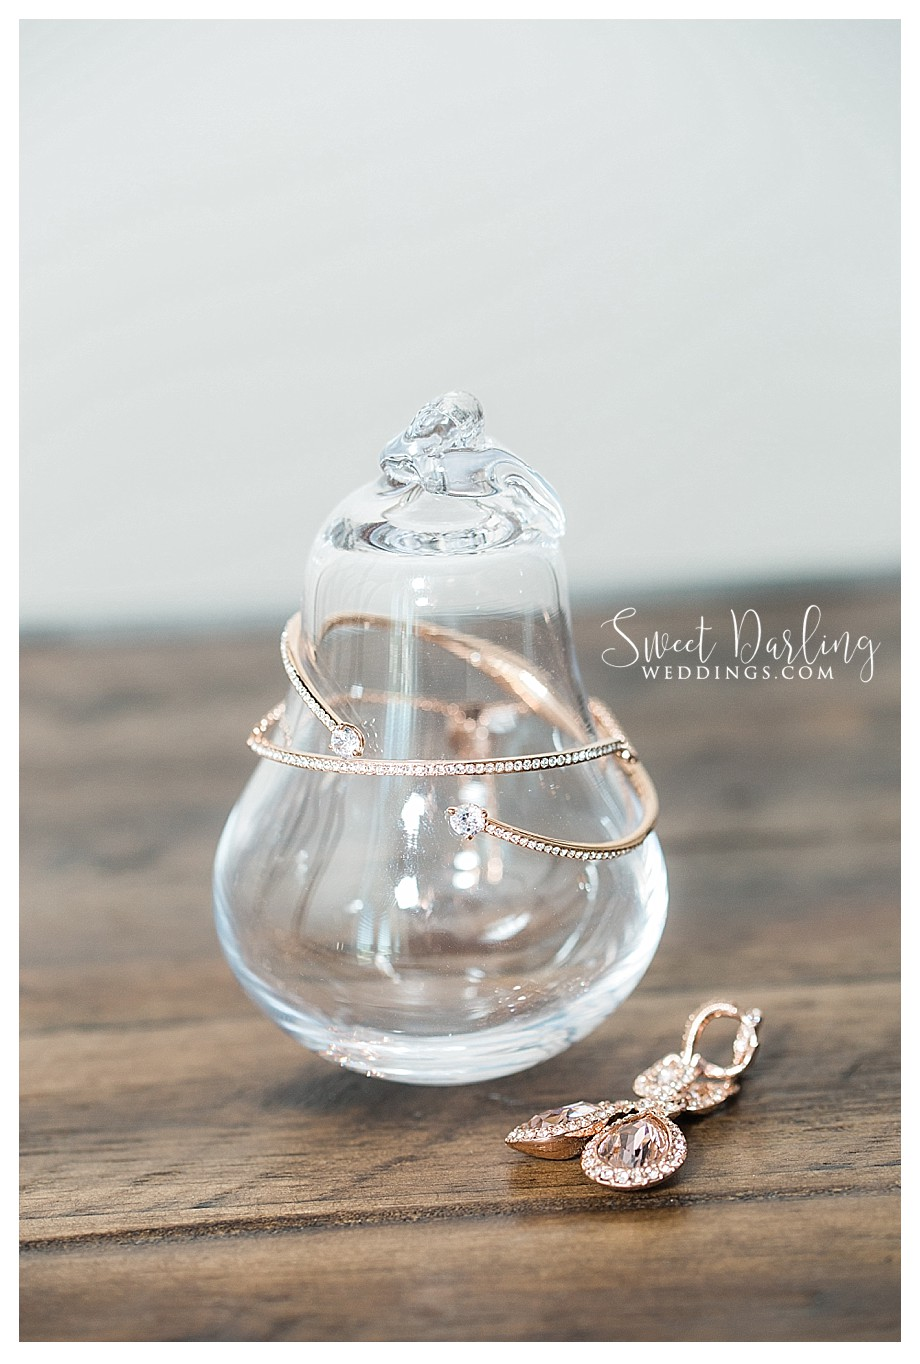 Bride's jewelry on glass pear